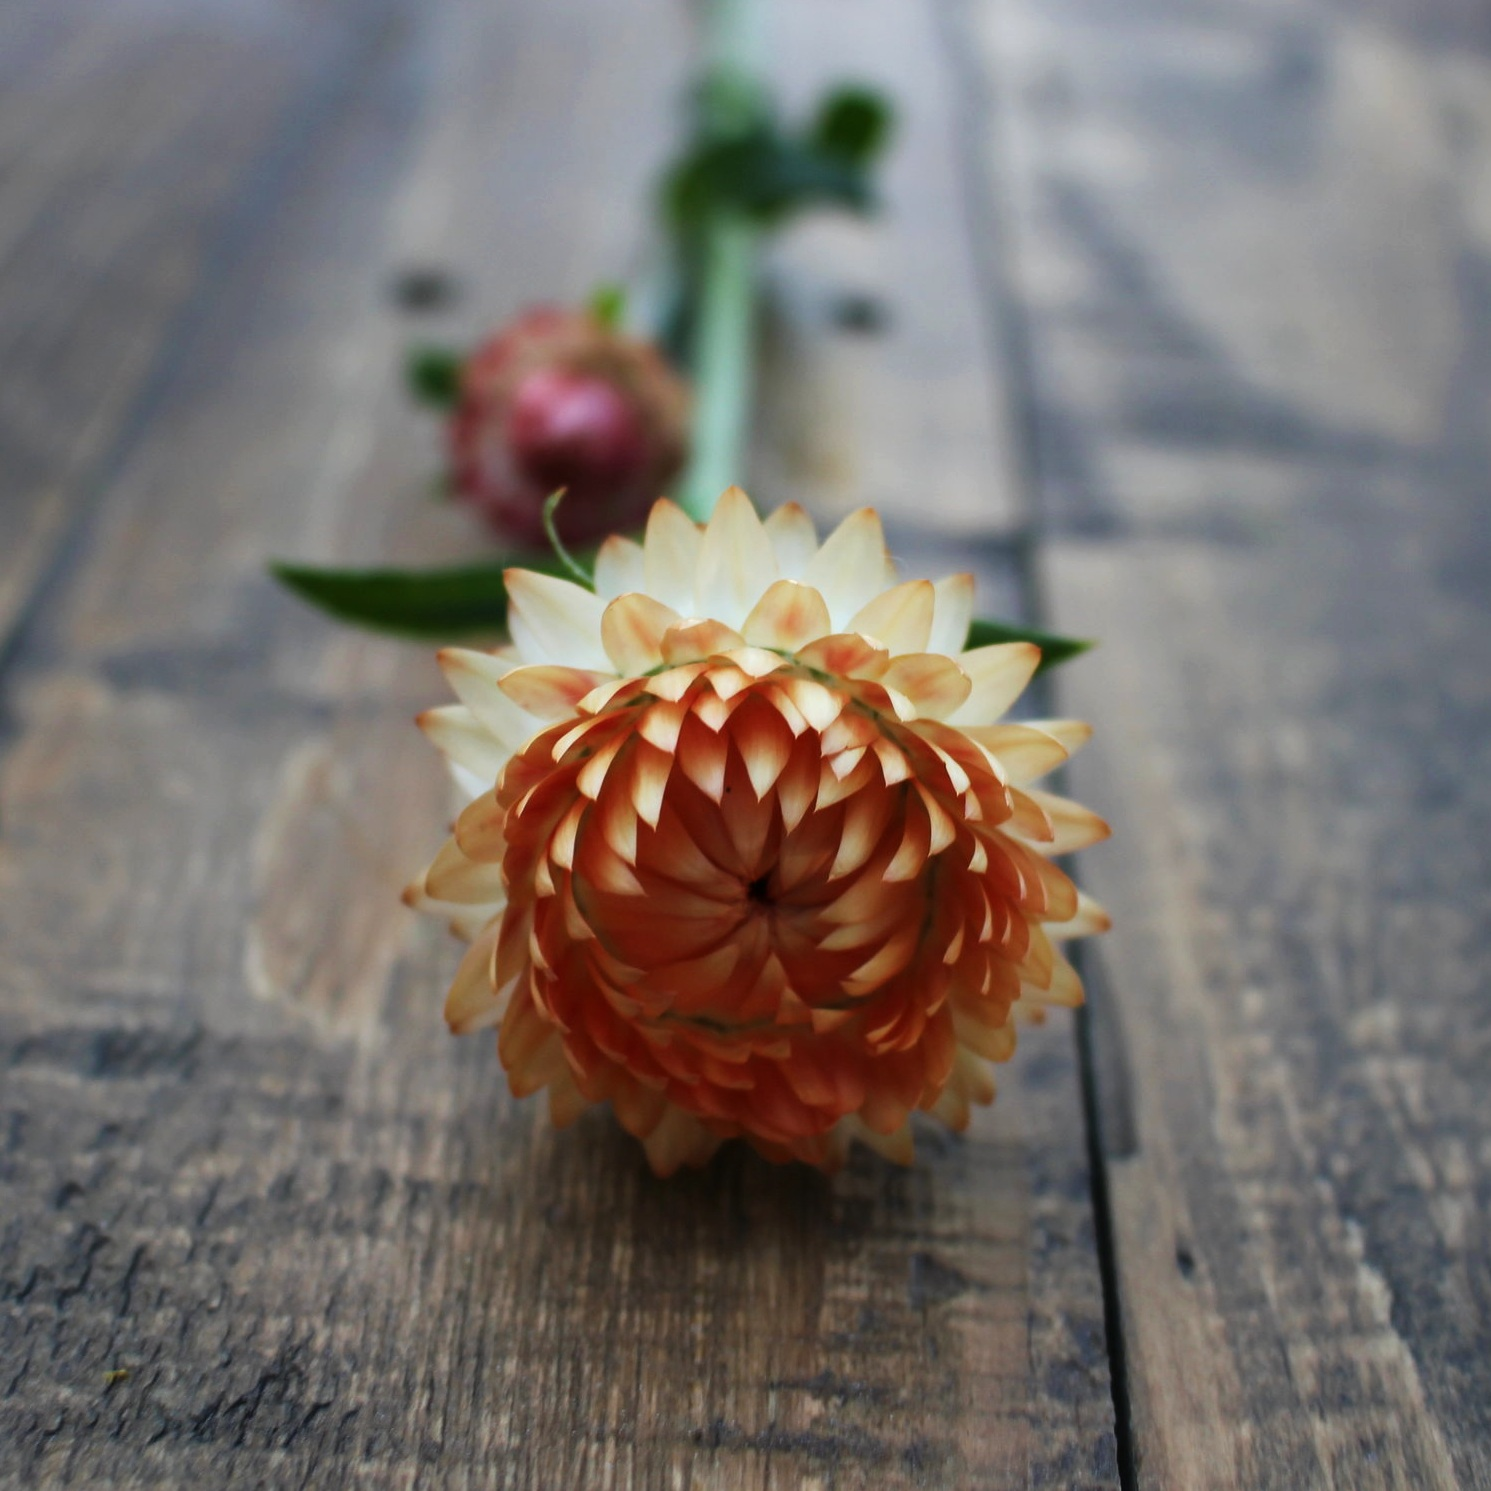 Strawflower, Apricot - Now available